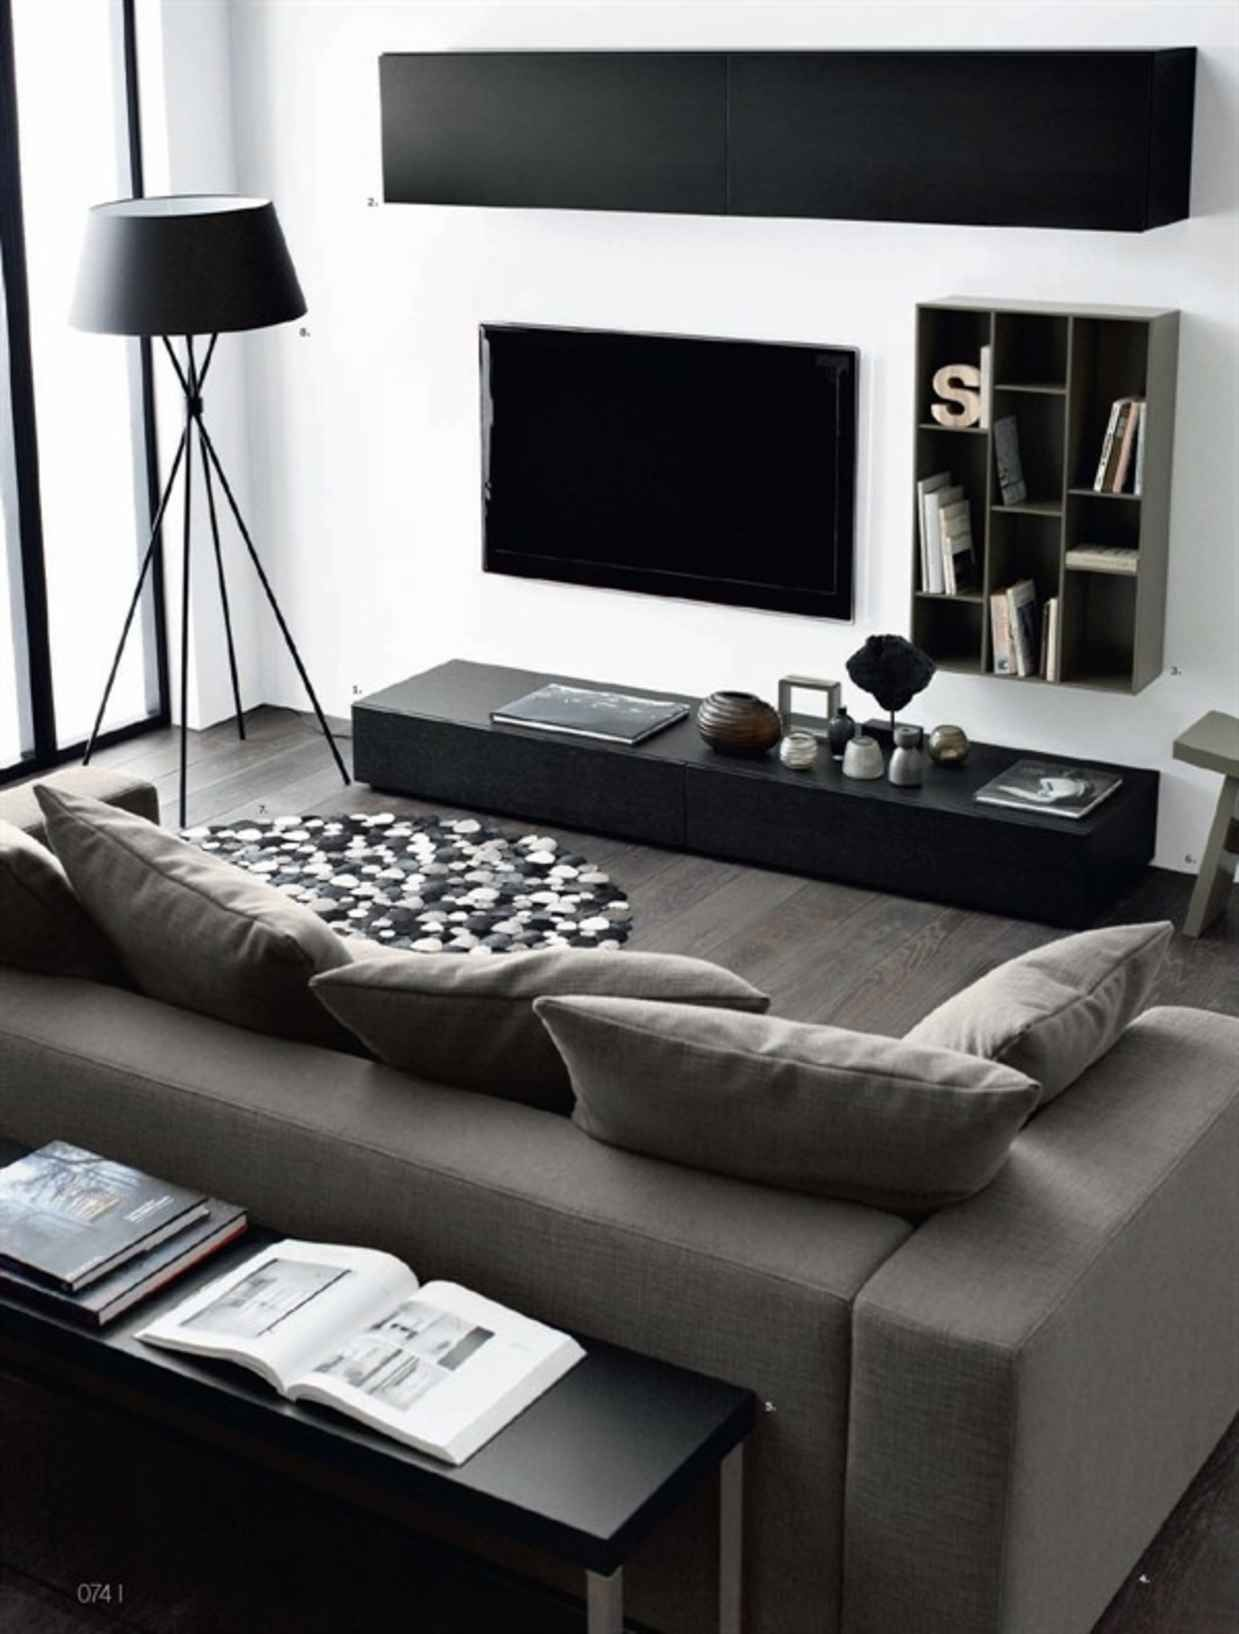 Merveilleux 32 Perfectly Minimal Living Areas For Your Inspiration   UltraLinx Meuble  Tv Noir, Salon Noir